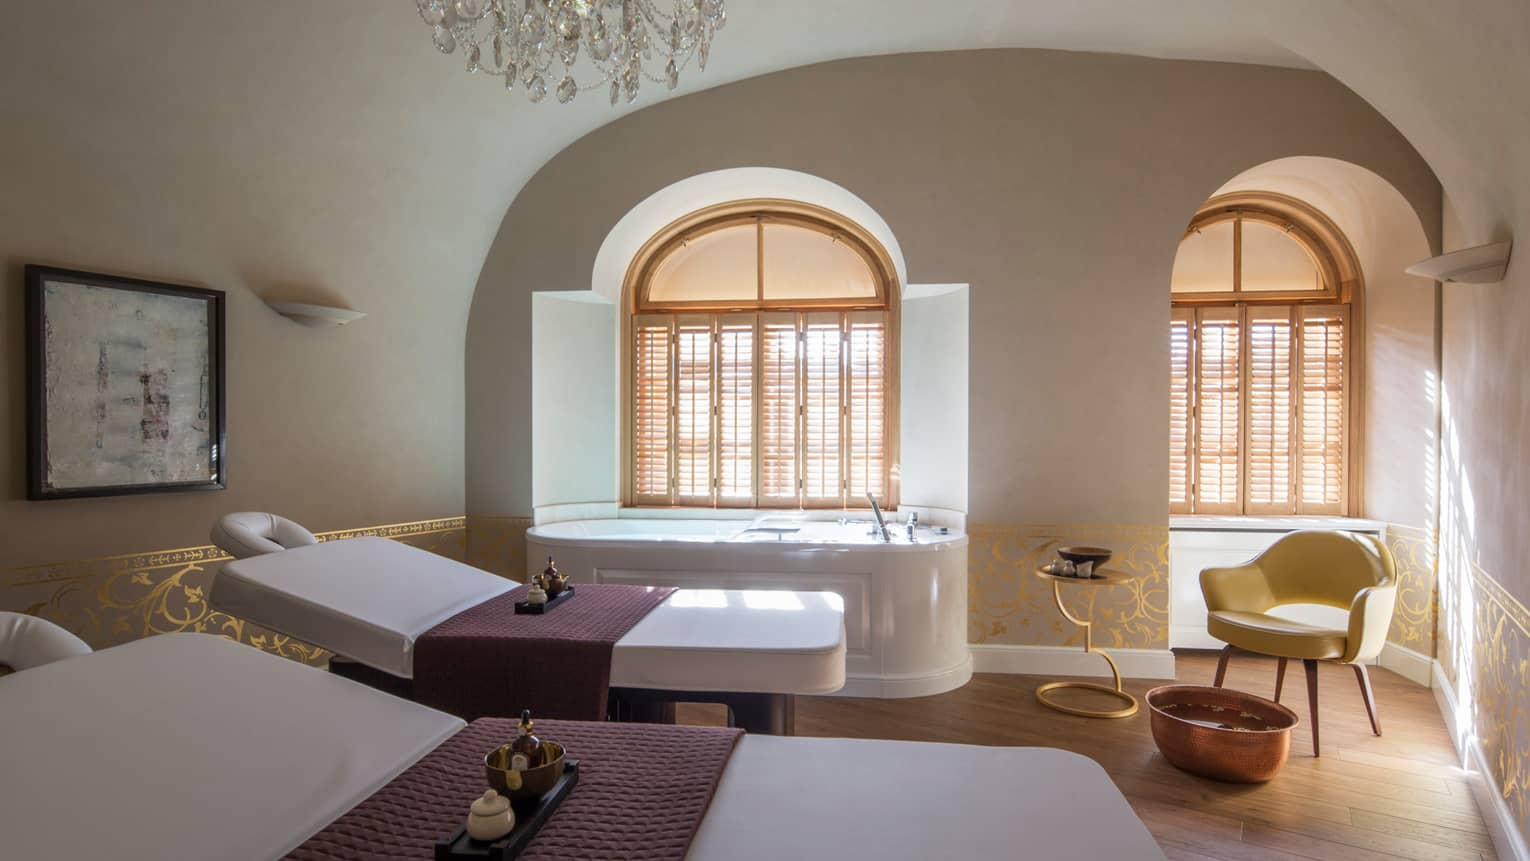 Two white beds beside spa tub in dimly-lit room at the Vltava Suite at AVA Spa